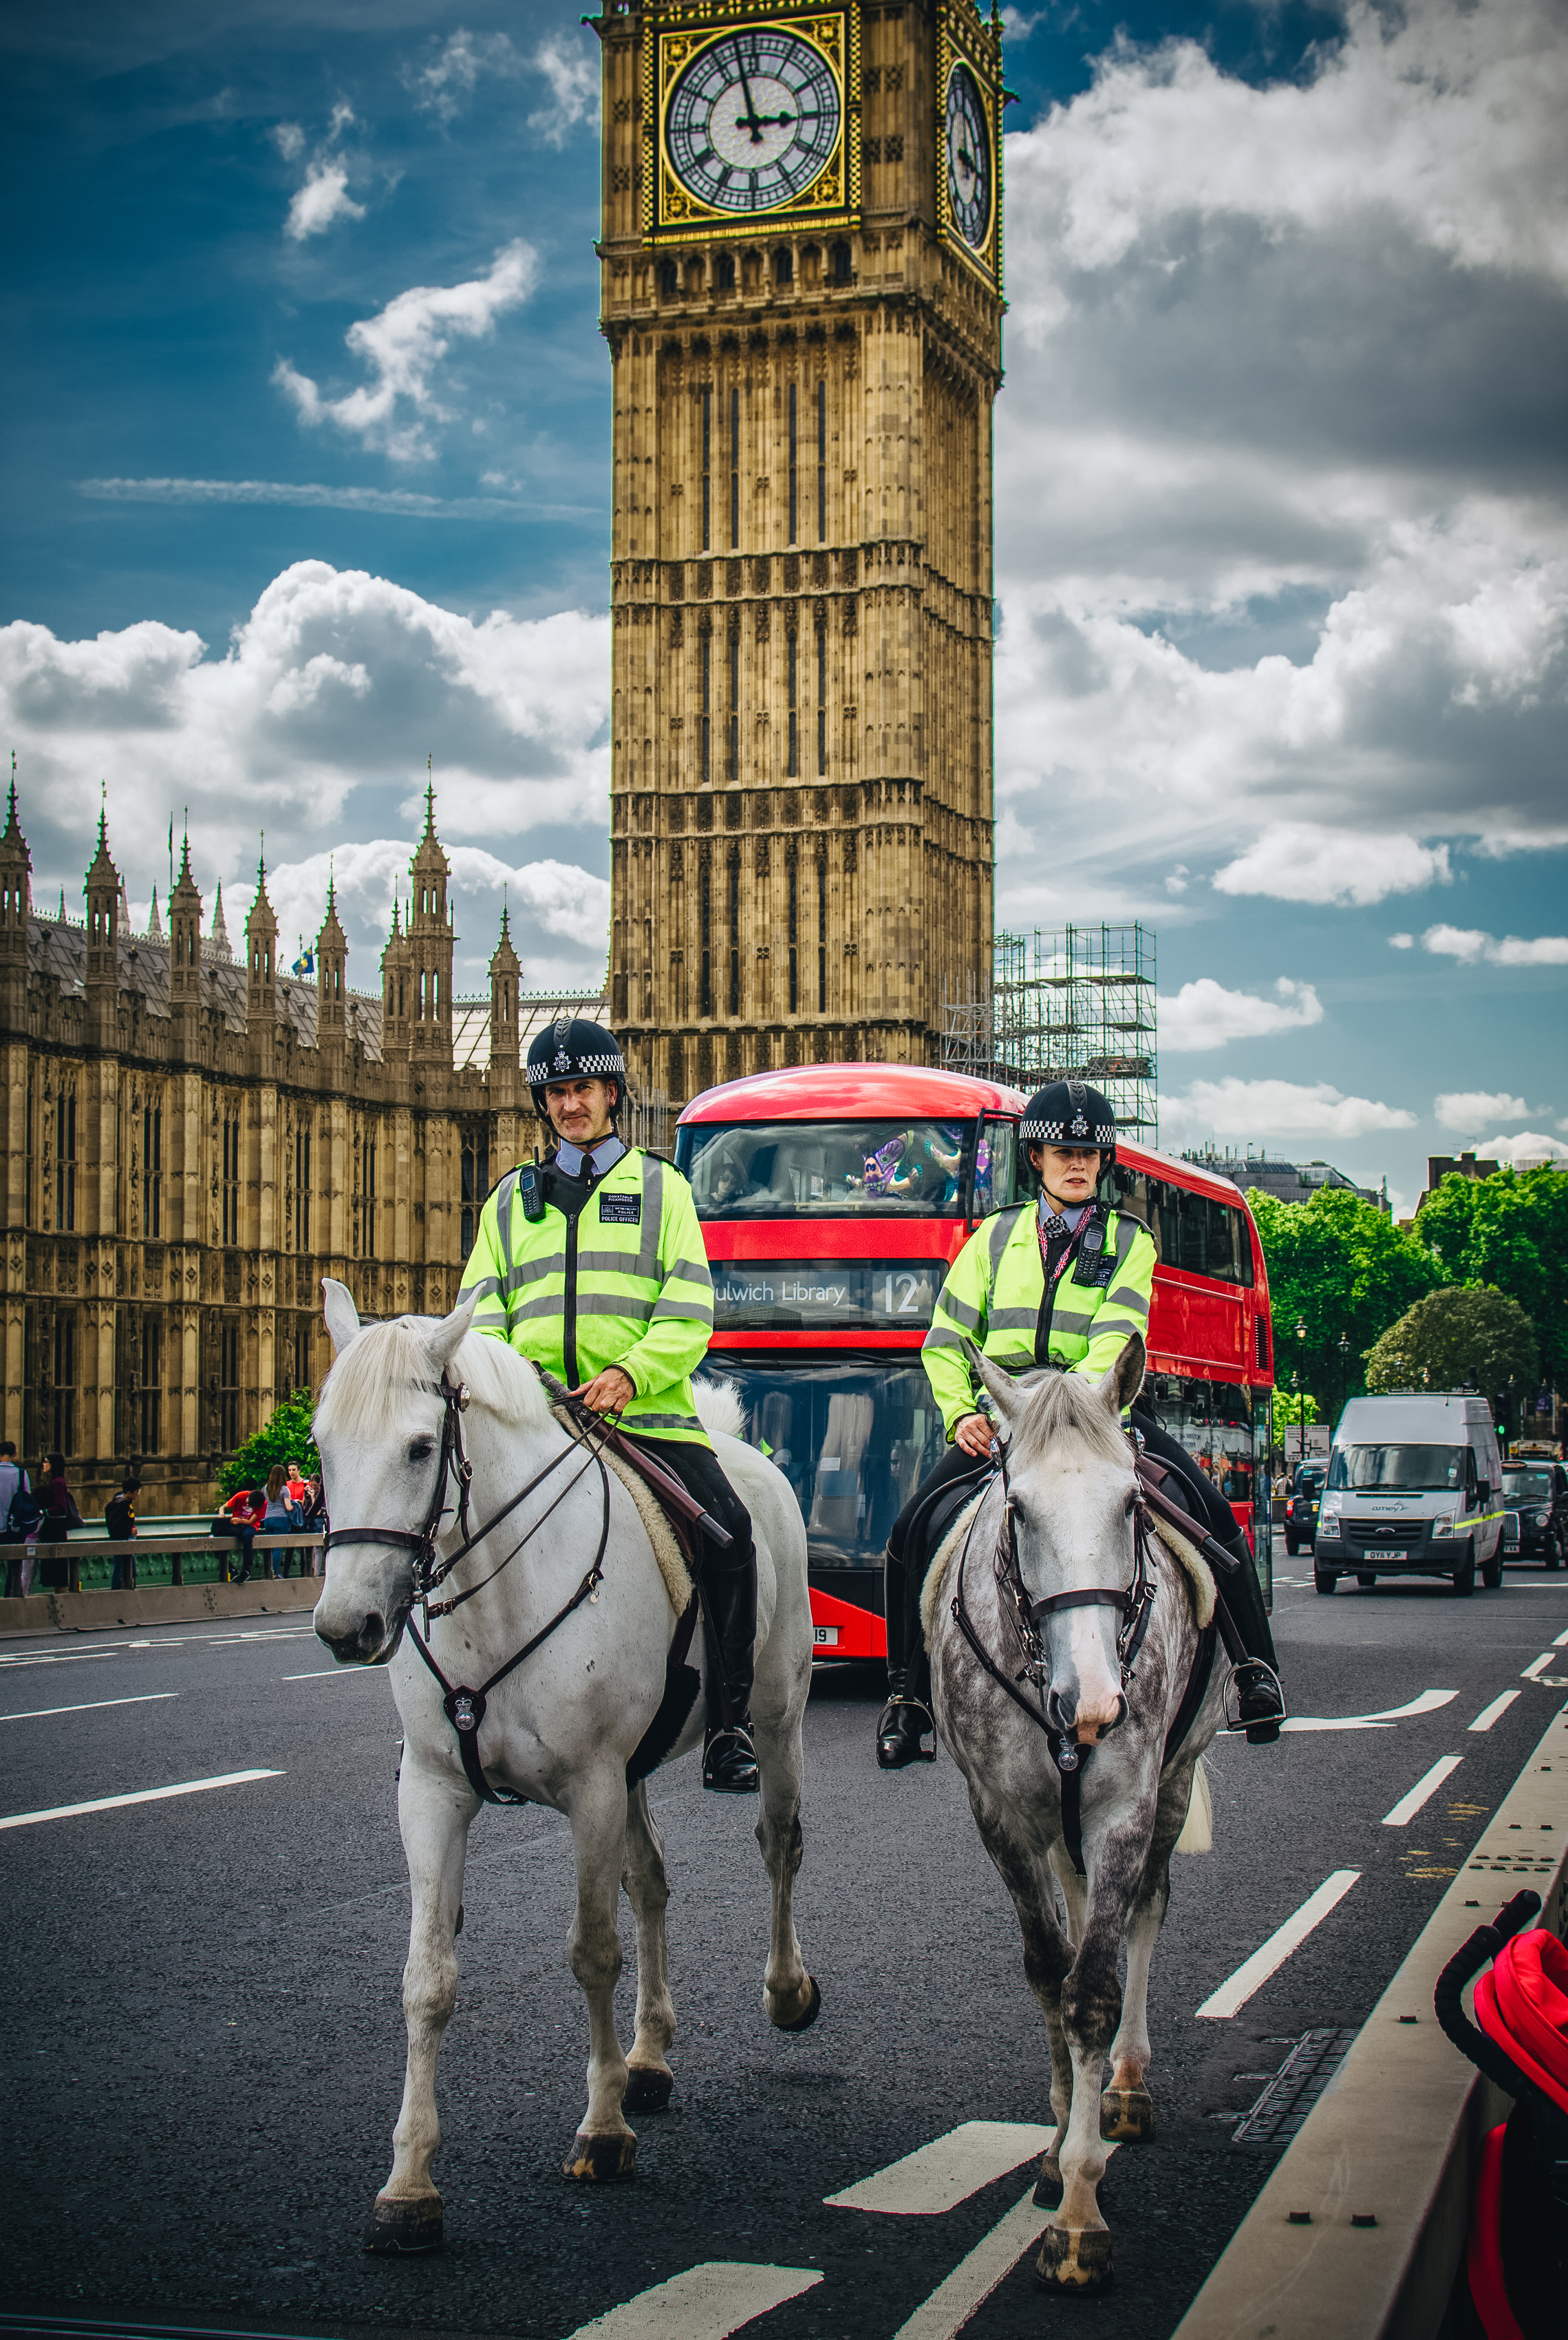 Police, police everywhere! Dapple grey is one of my favourite horse colouration.